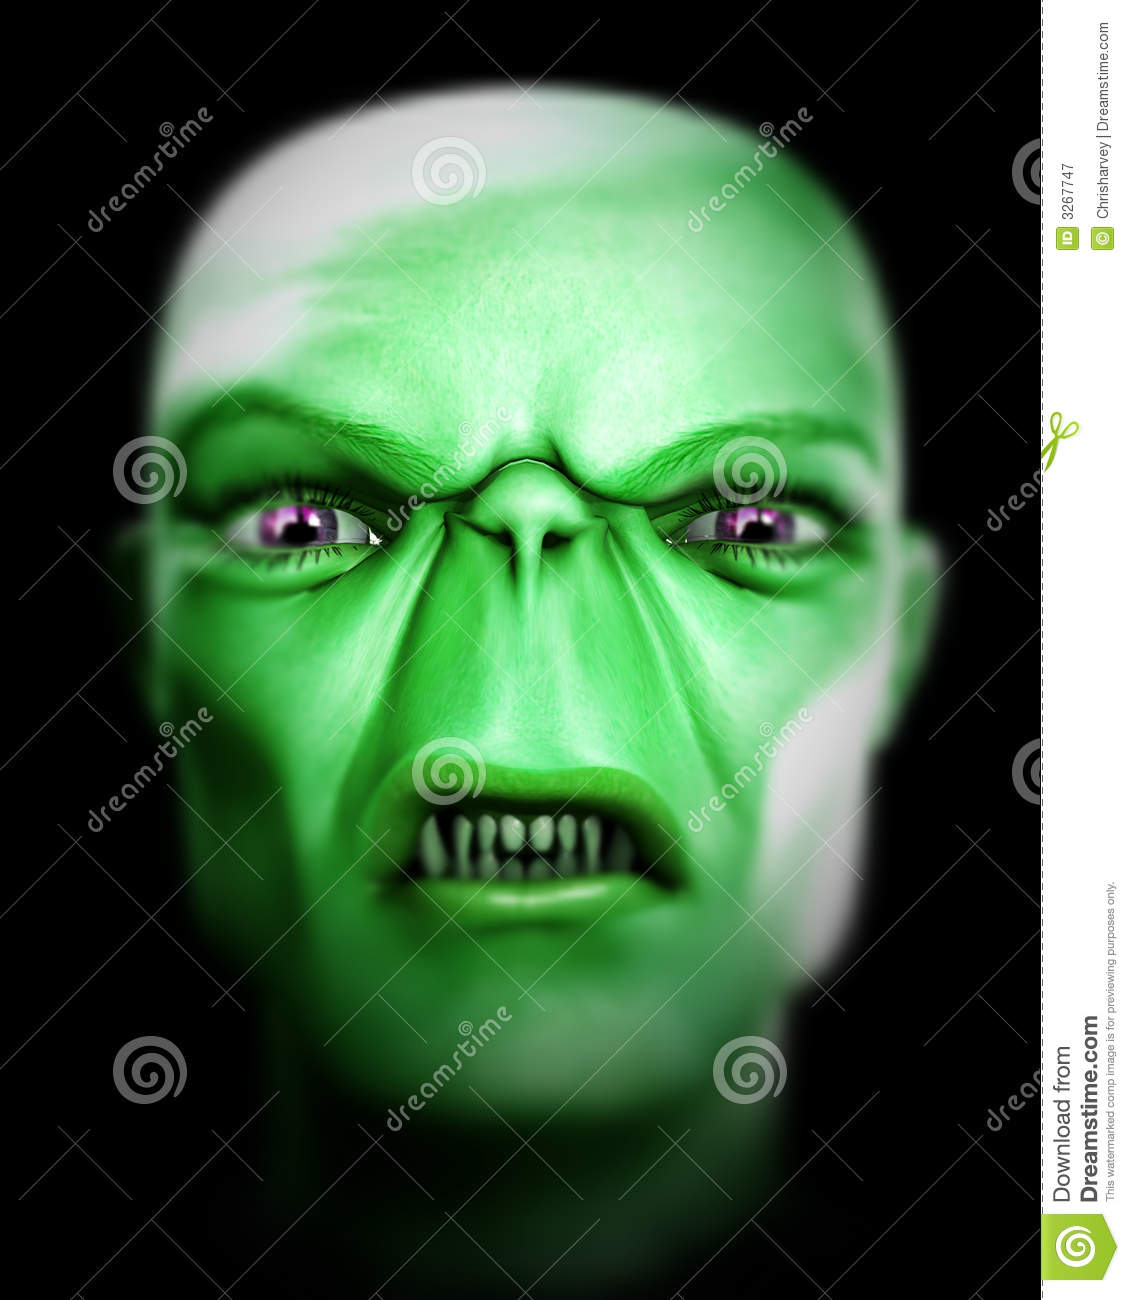 Monster Face 104 Royalty Free Stock Photography - Image: 3267747 Angry Black Woman Face